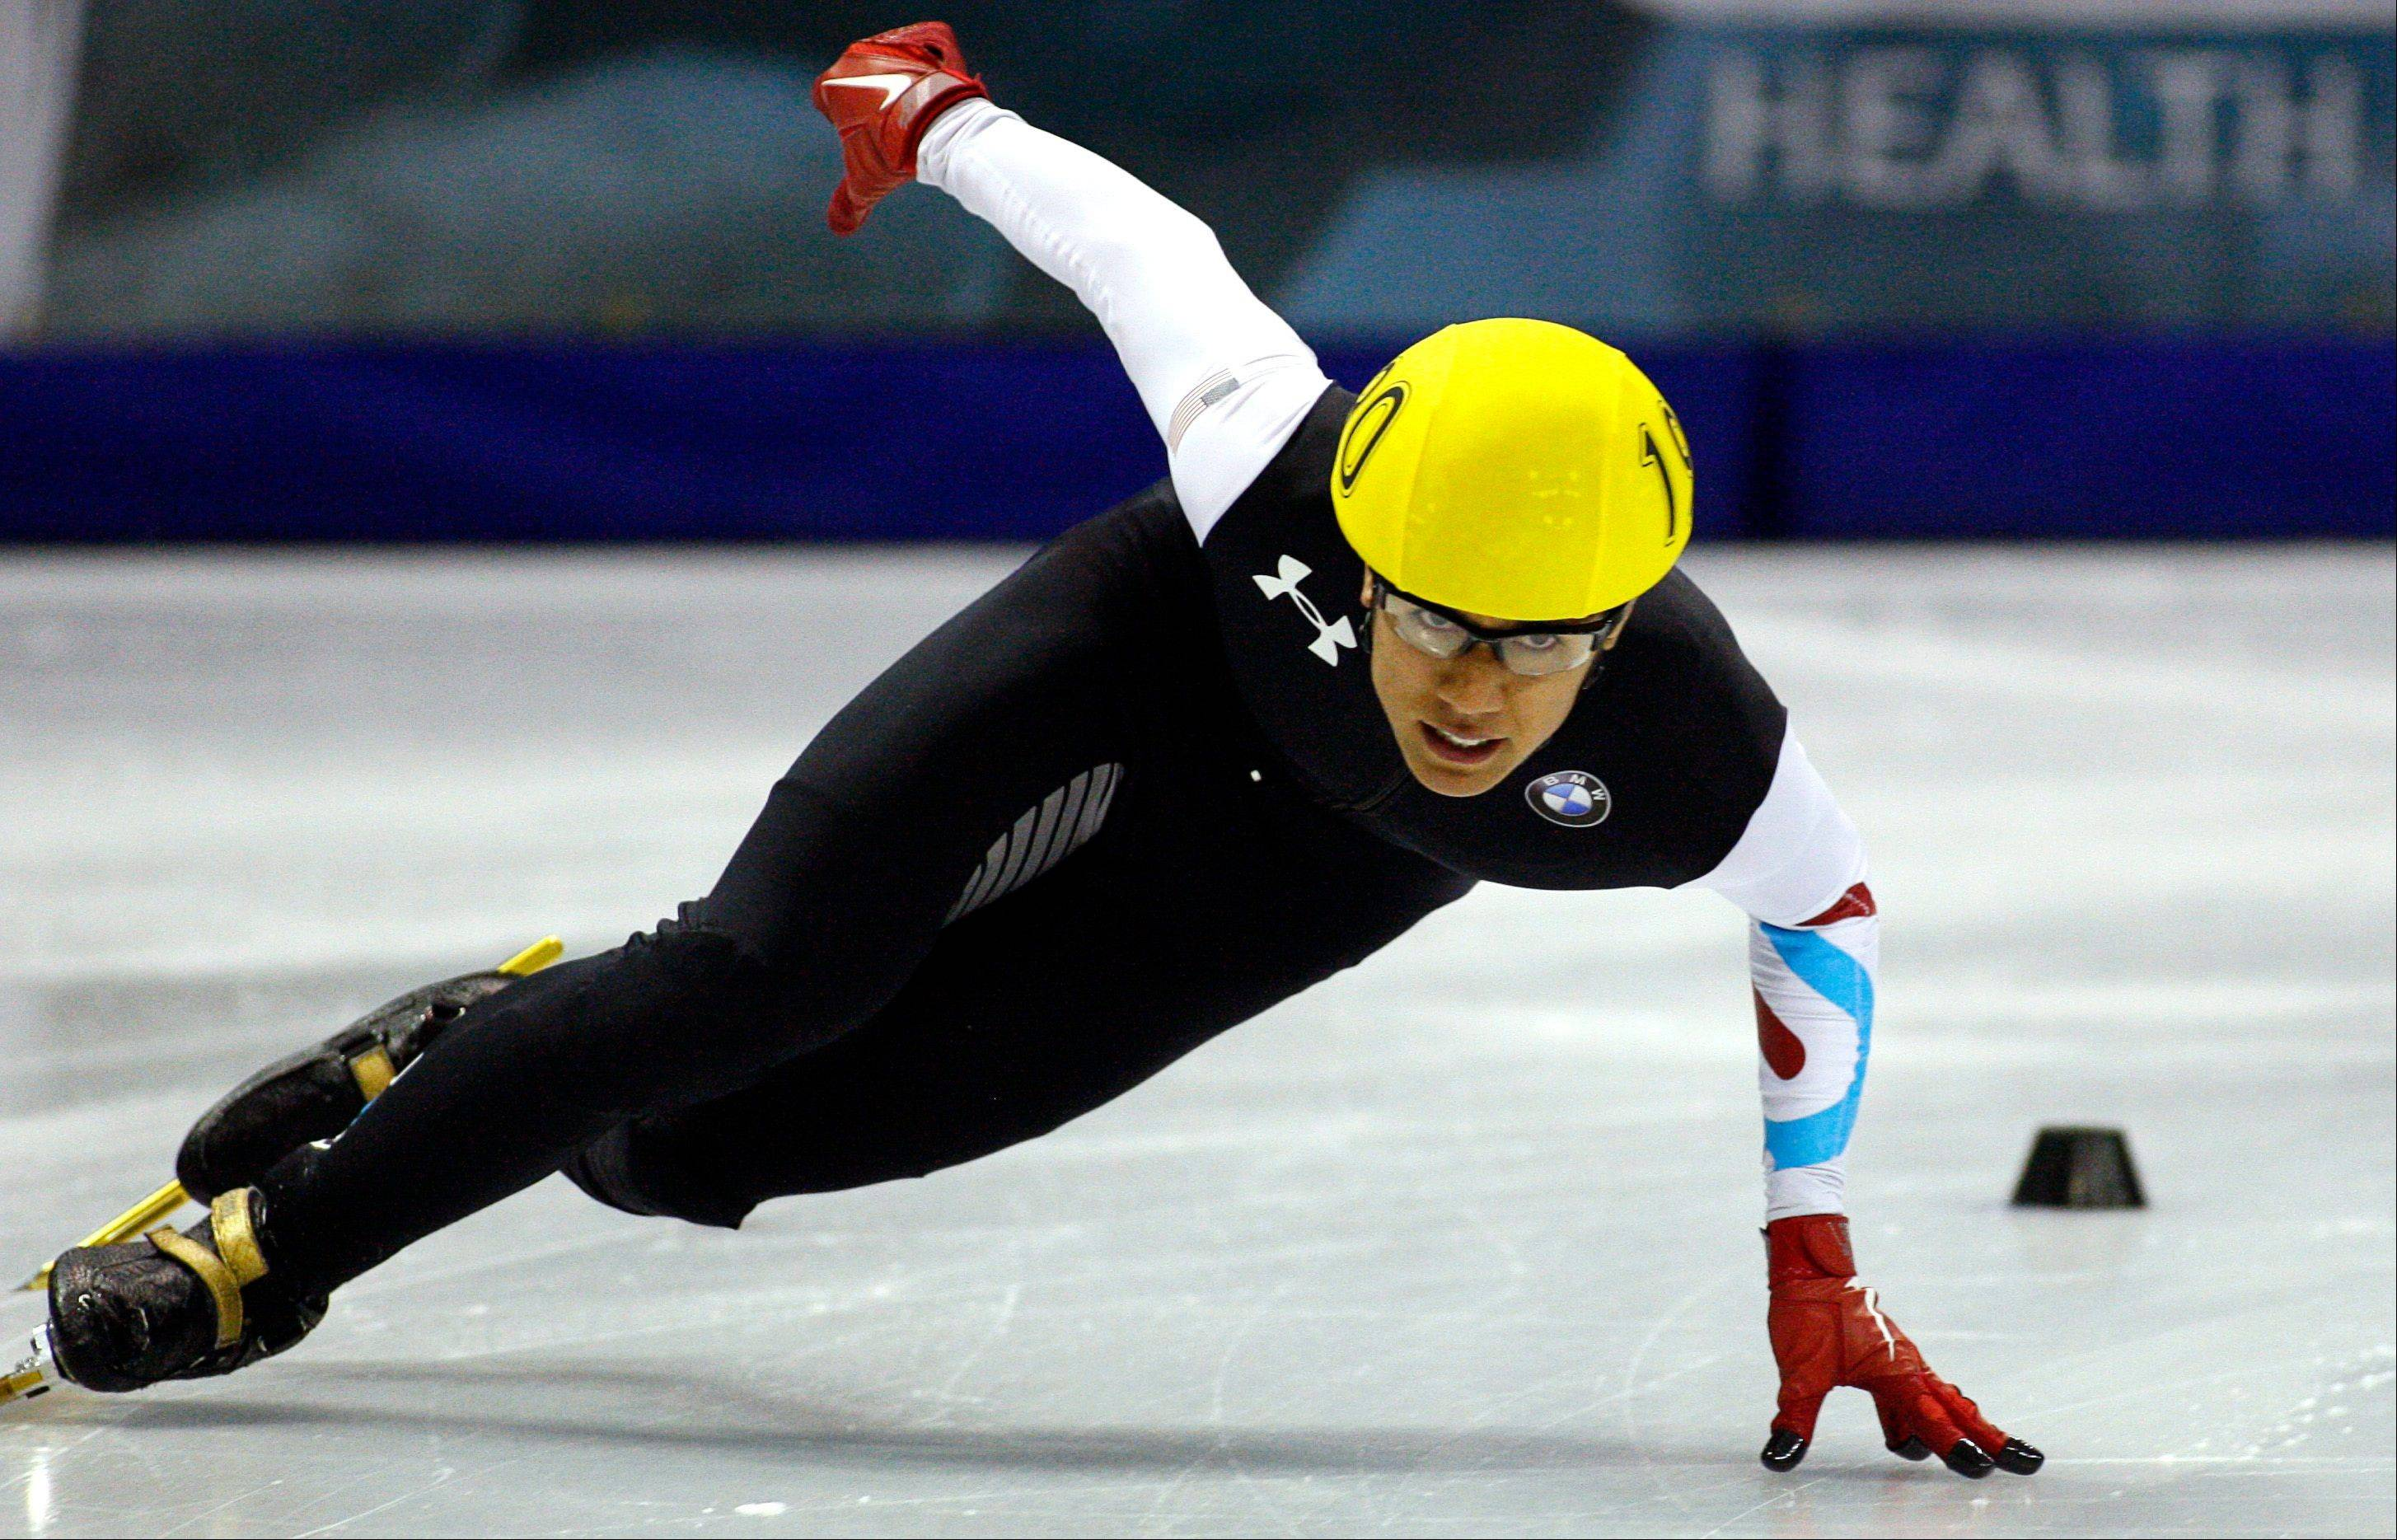 J.R. Celski of the U.S. skates for a gold medal Sunday during the men's 500-meter competition at the ISU World Cup short track speed skating event in Calgary, Alberta.